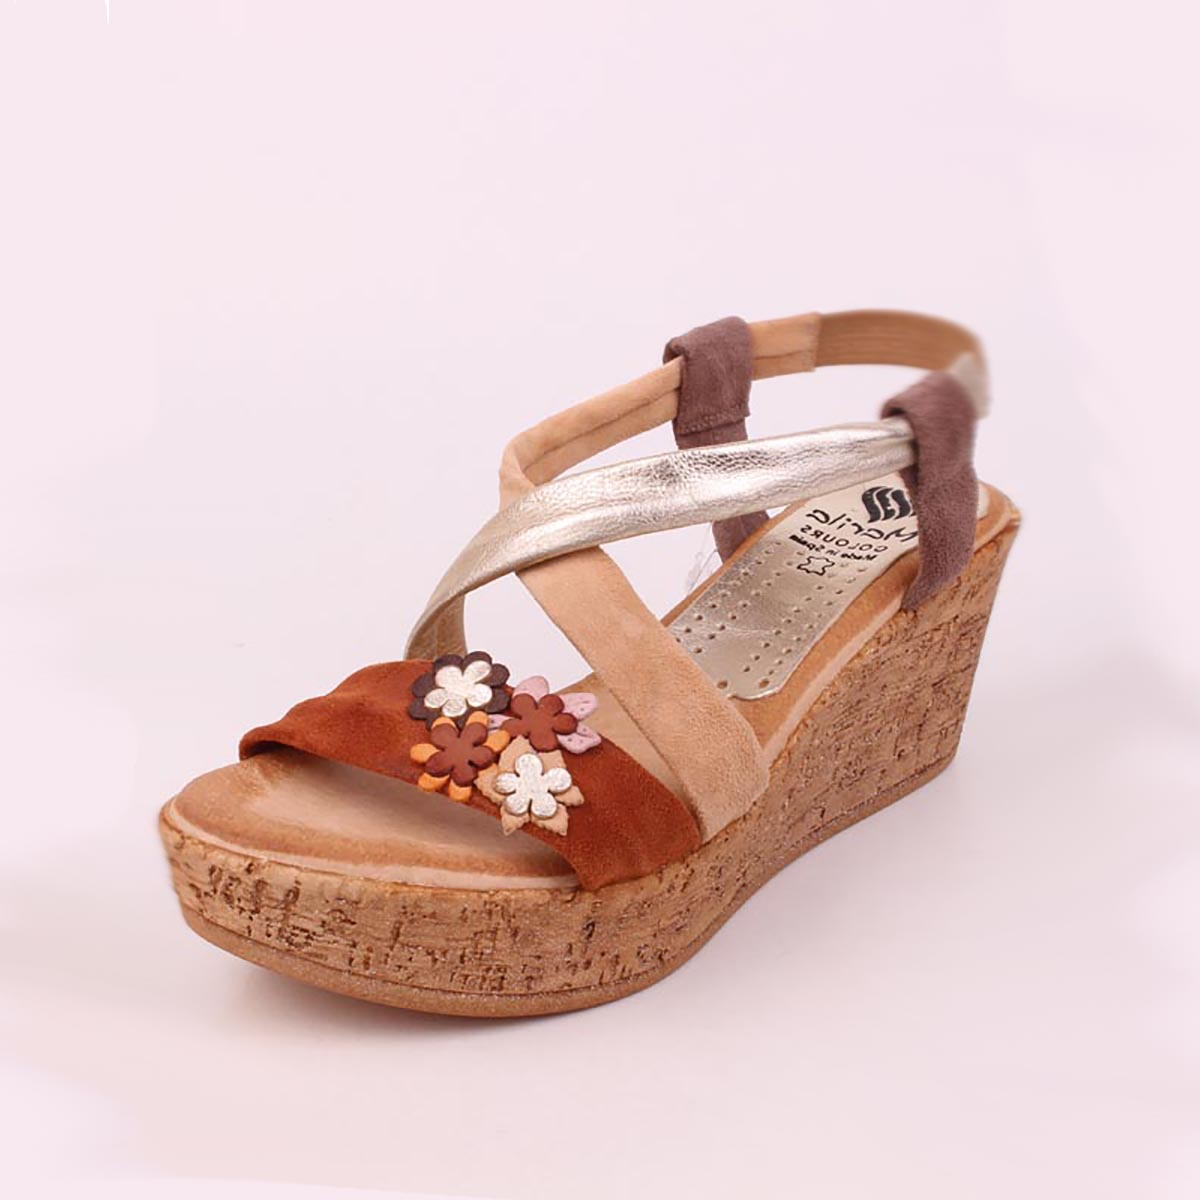 Daisy - Marila Wedge Summer Sandal